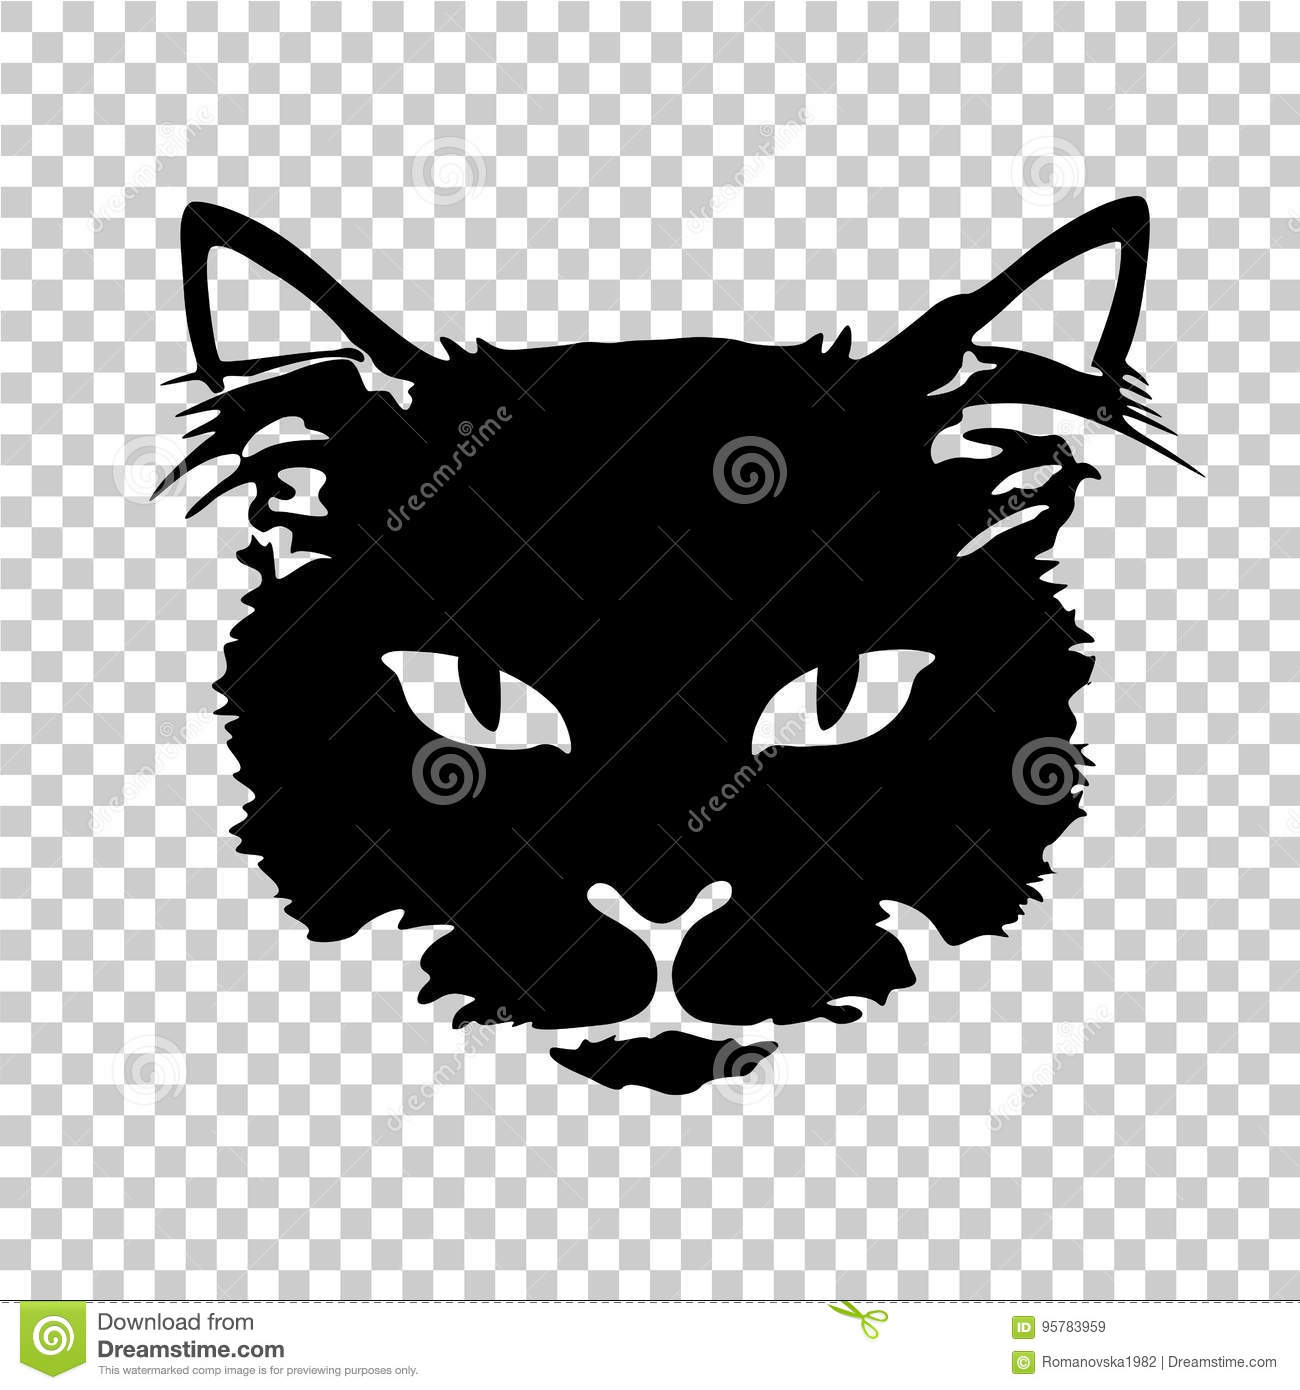 Black Cat Silhouette Tattoo Stock Vector Illustration Of Portrait